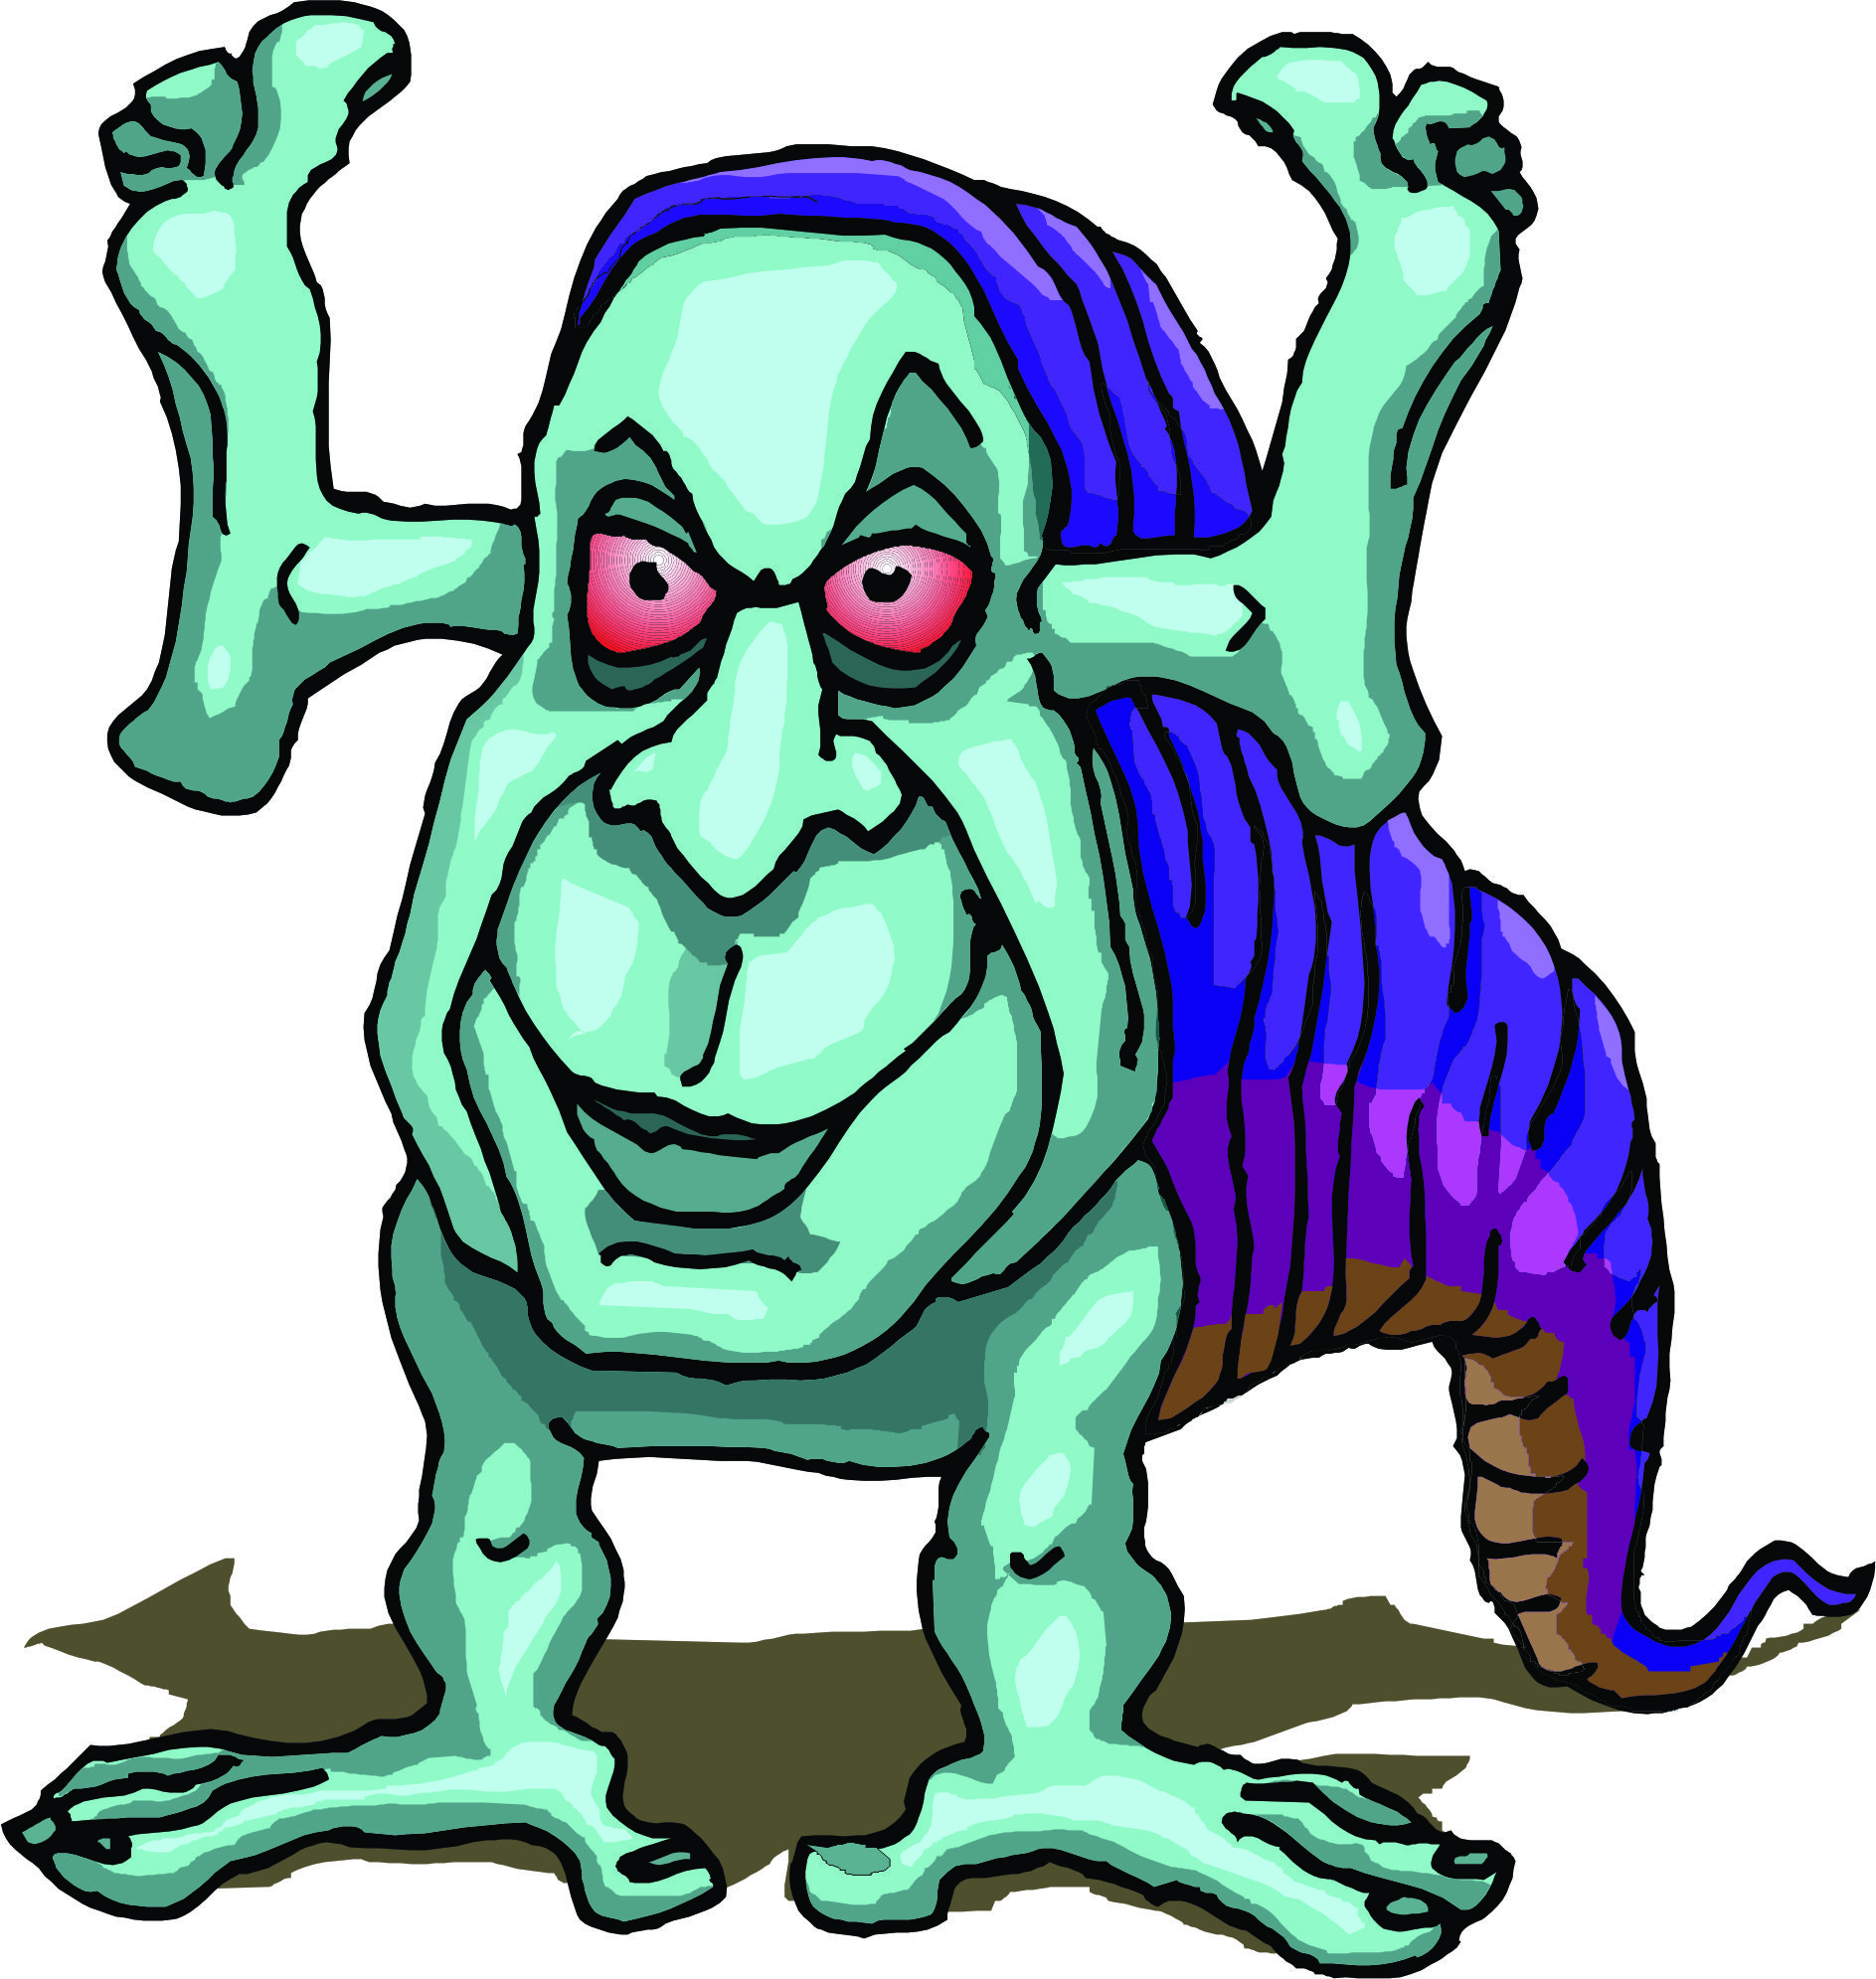 Cartoon Monsters Images - ClipArt Best